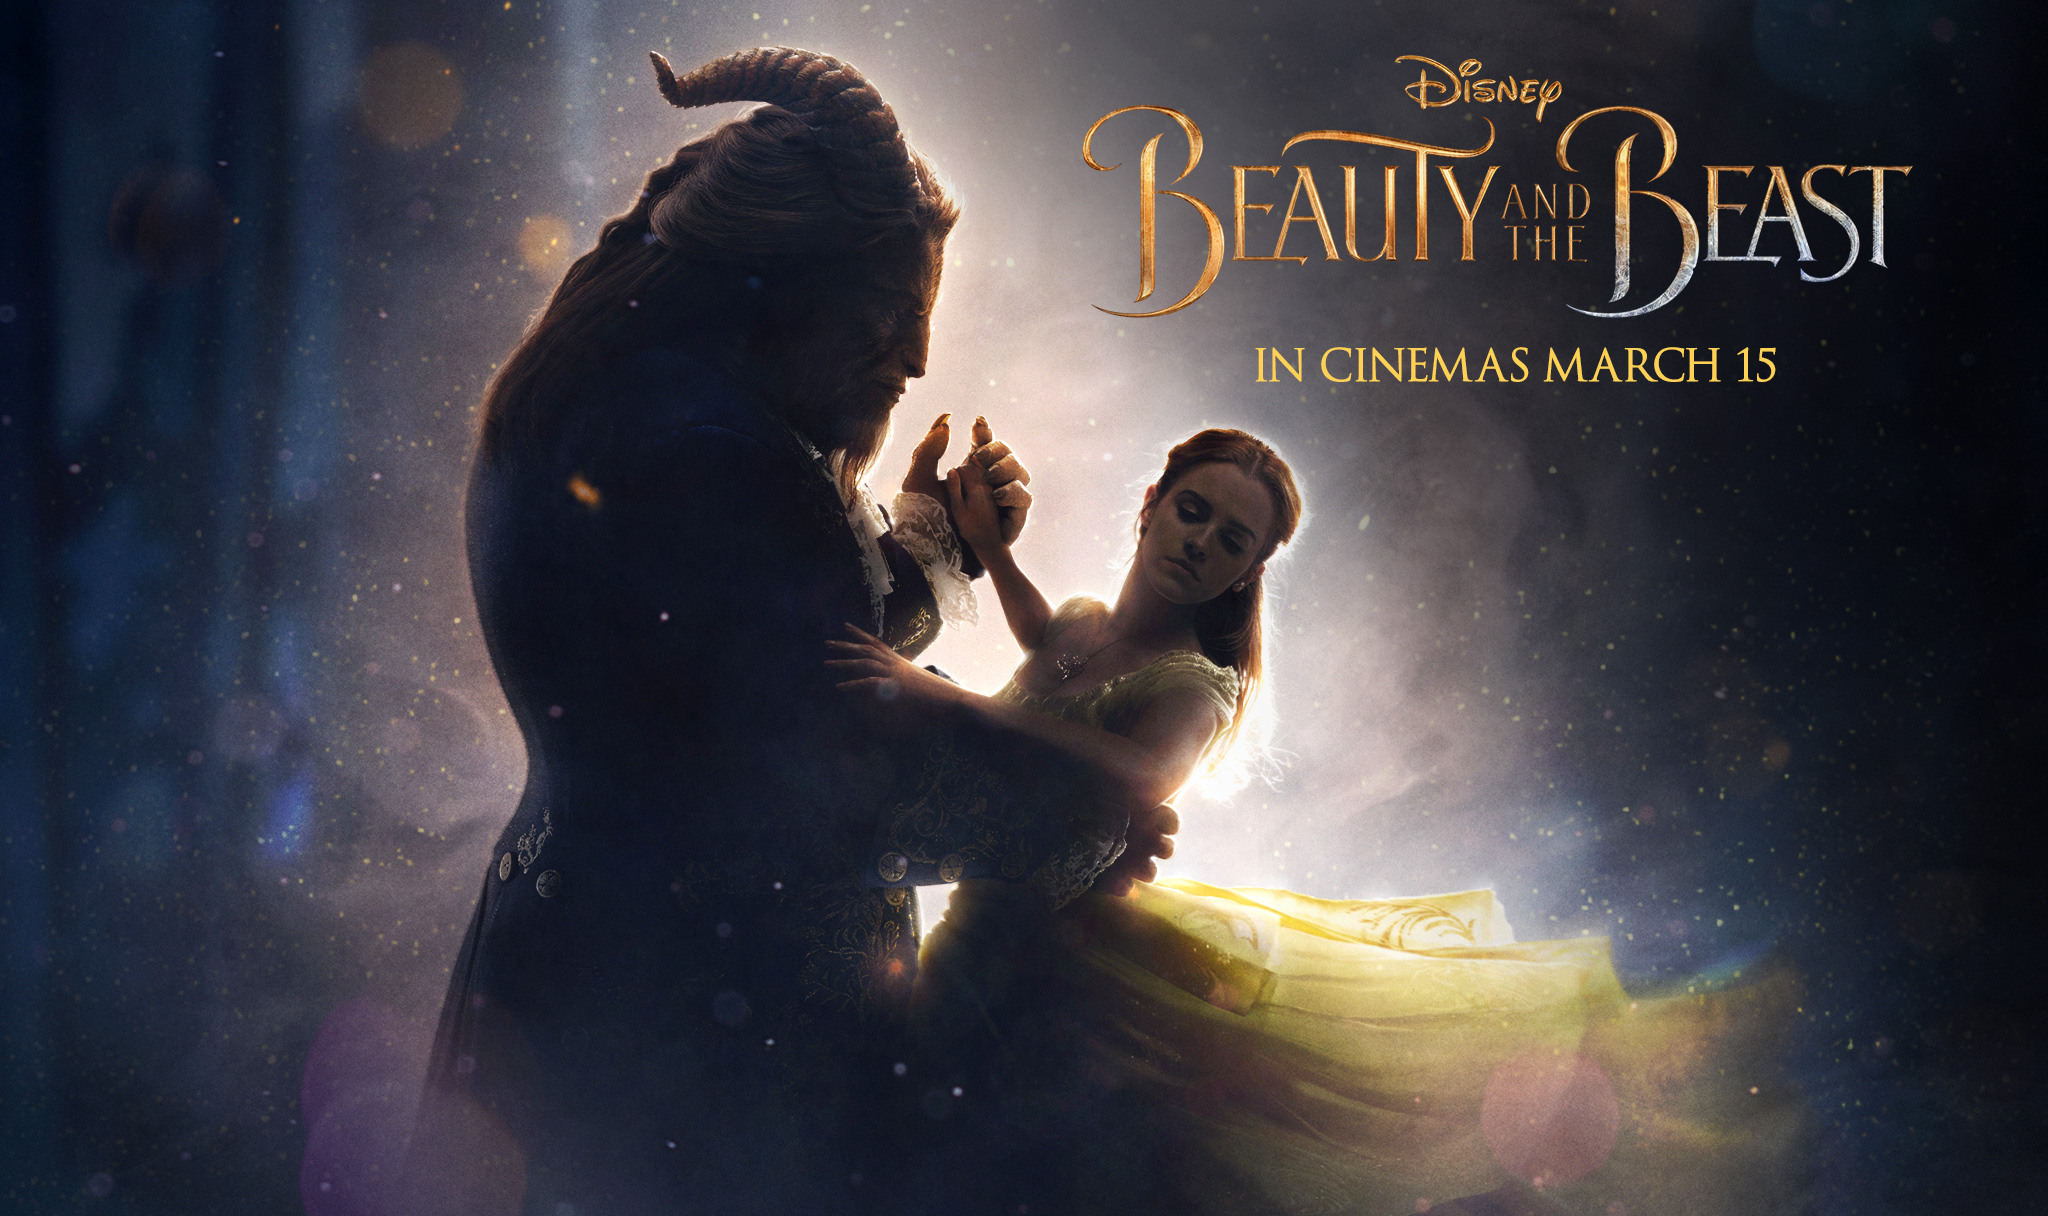 Belle talks to hairbrush in new clip; Emma Watson sings 'Something There'